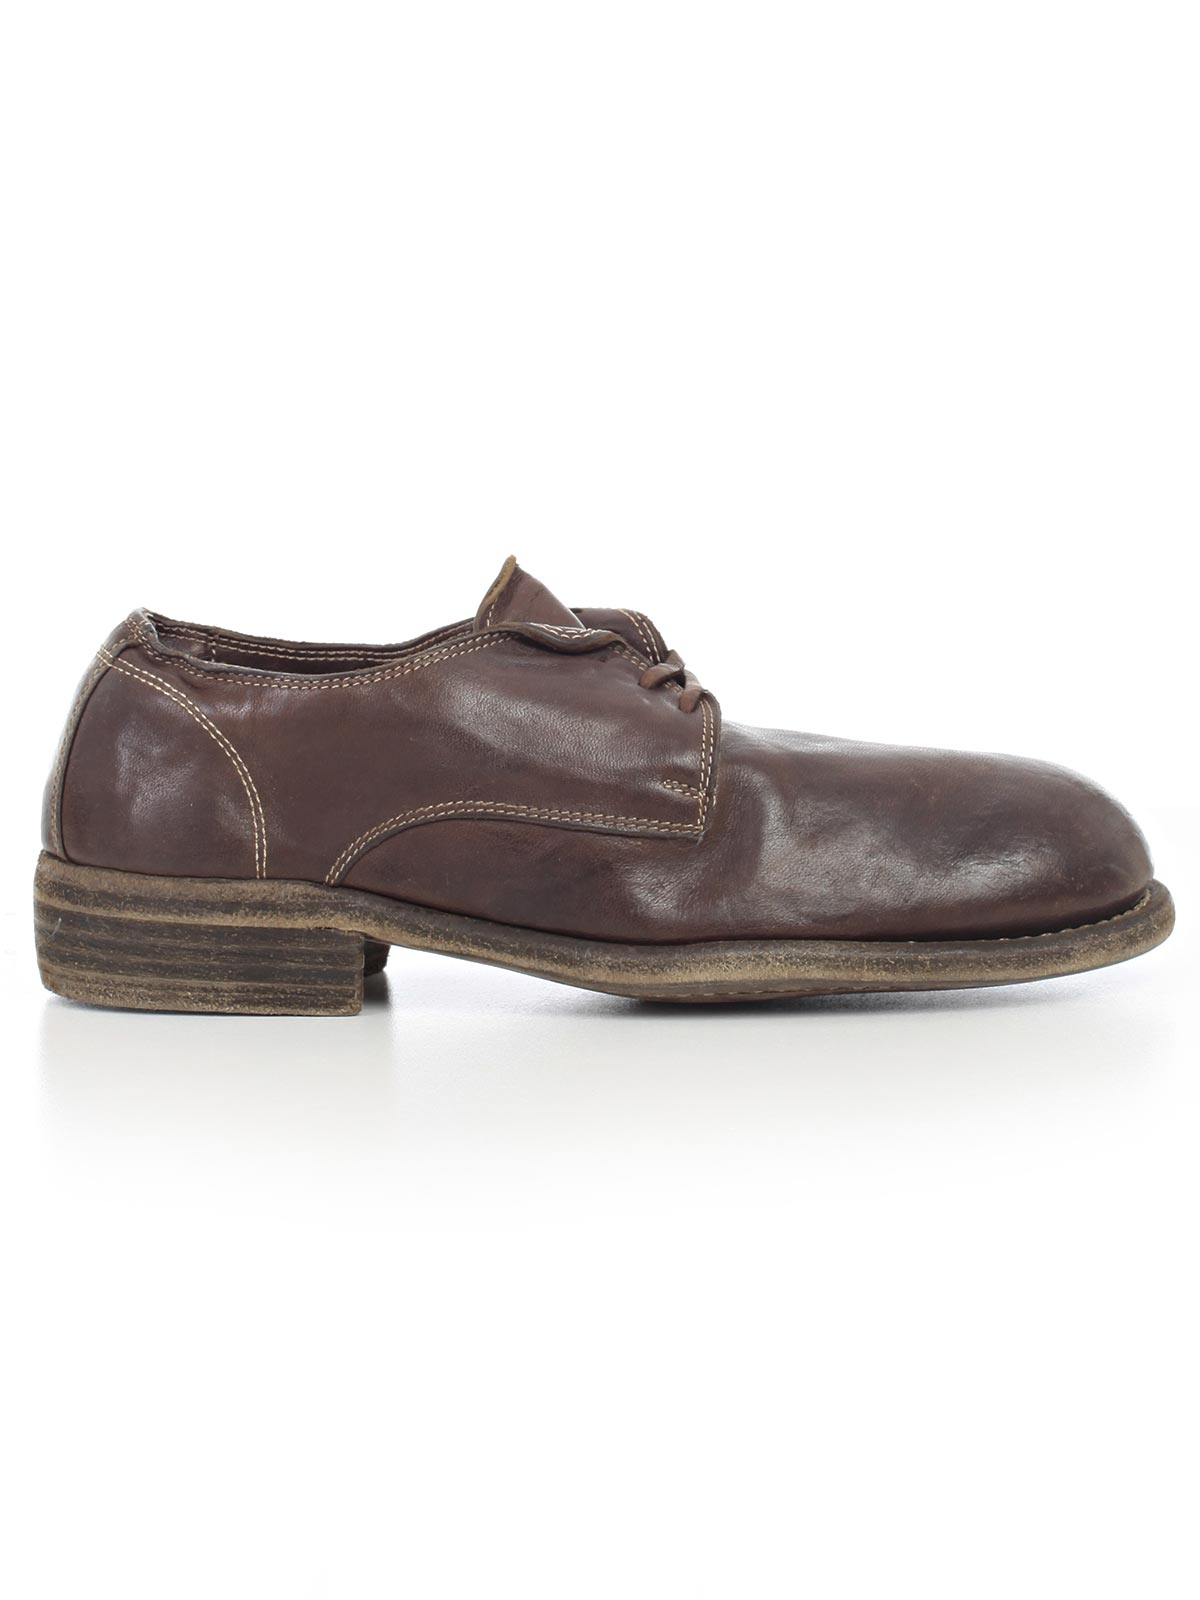 Picture of GUIDI Lace ups shoes